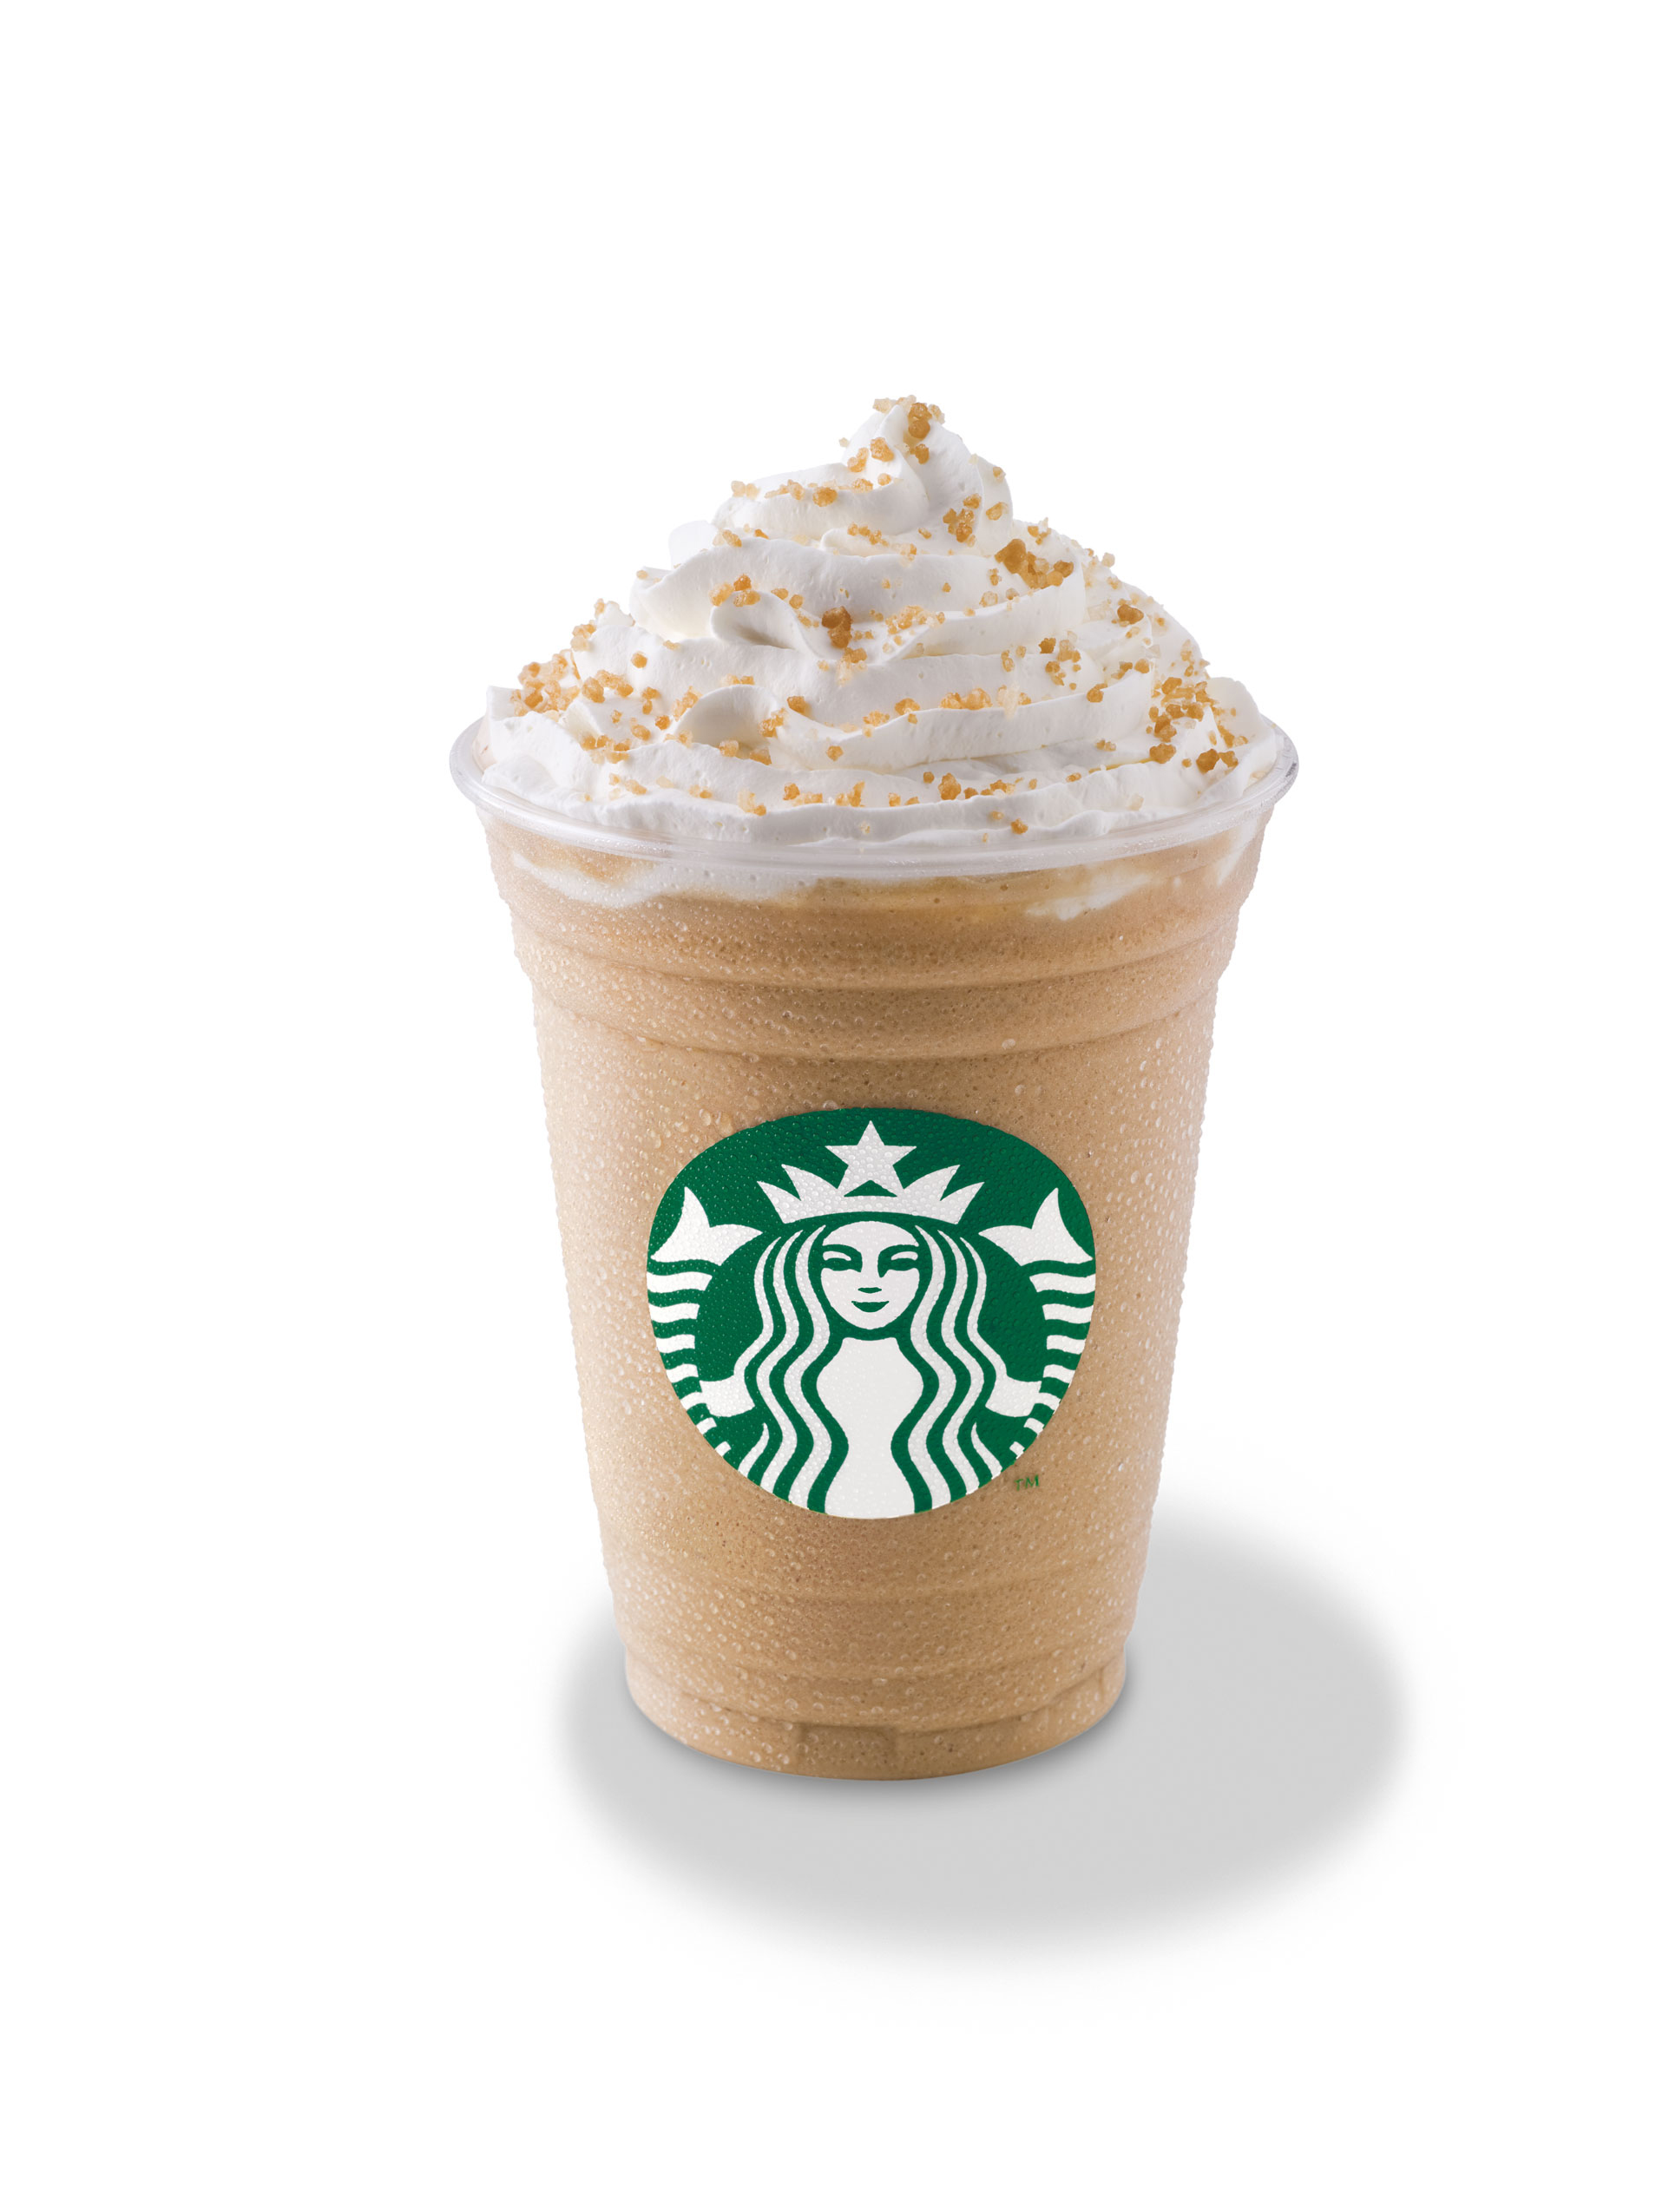 The Toffee Nut Latte